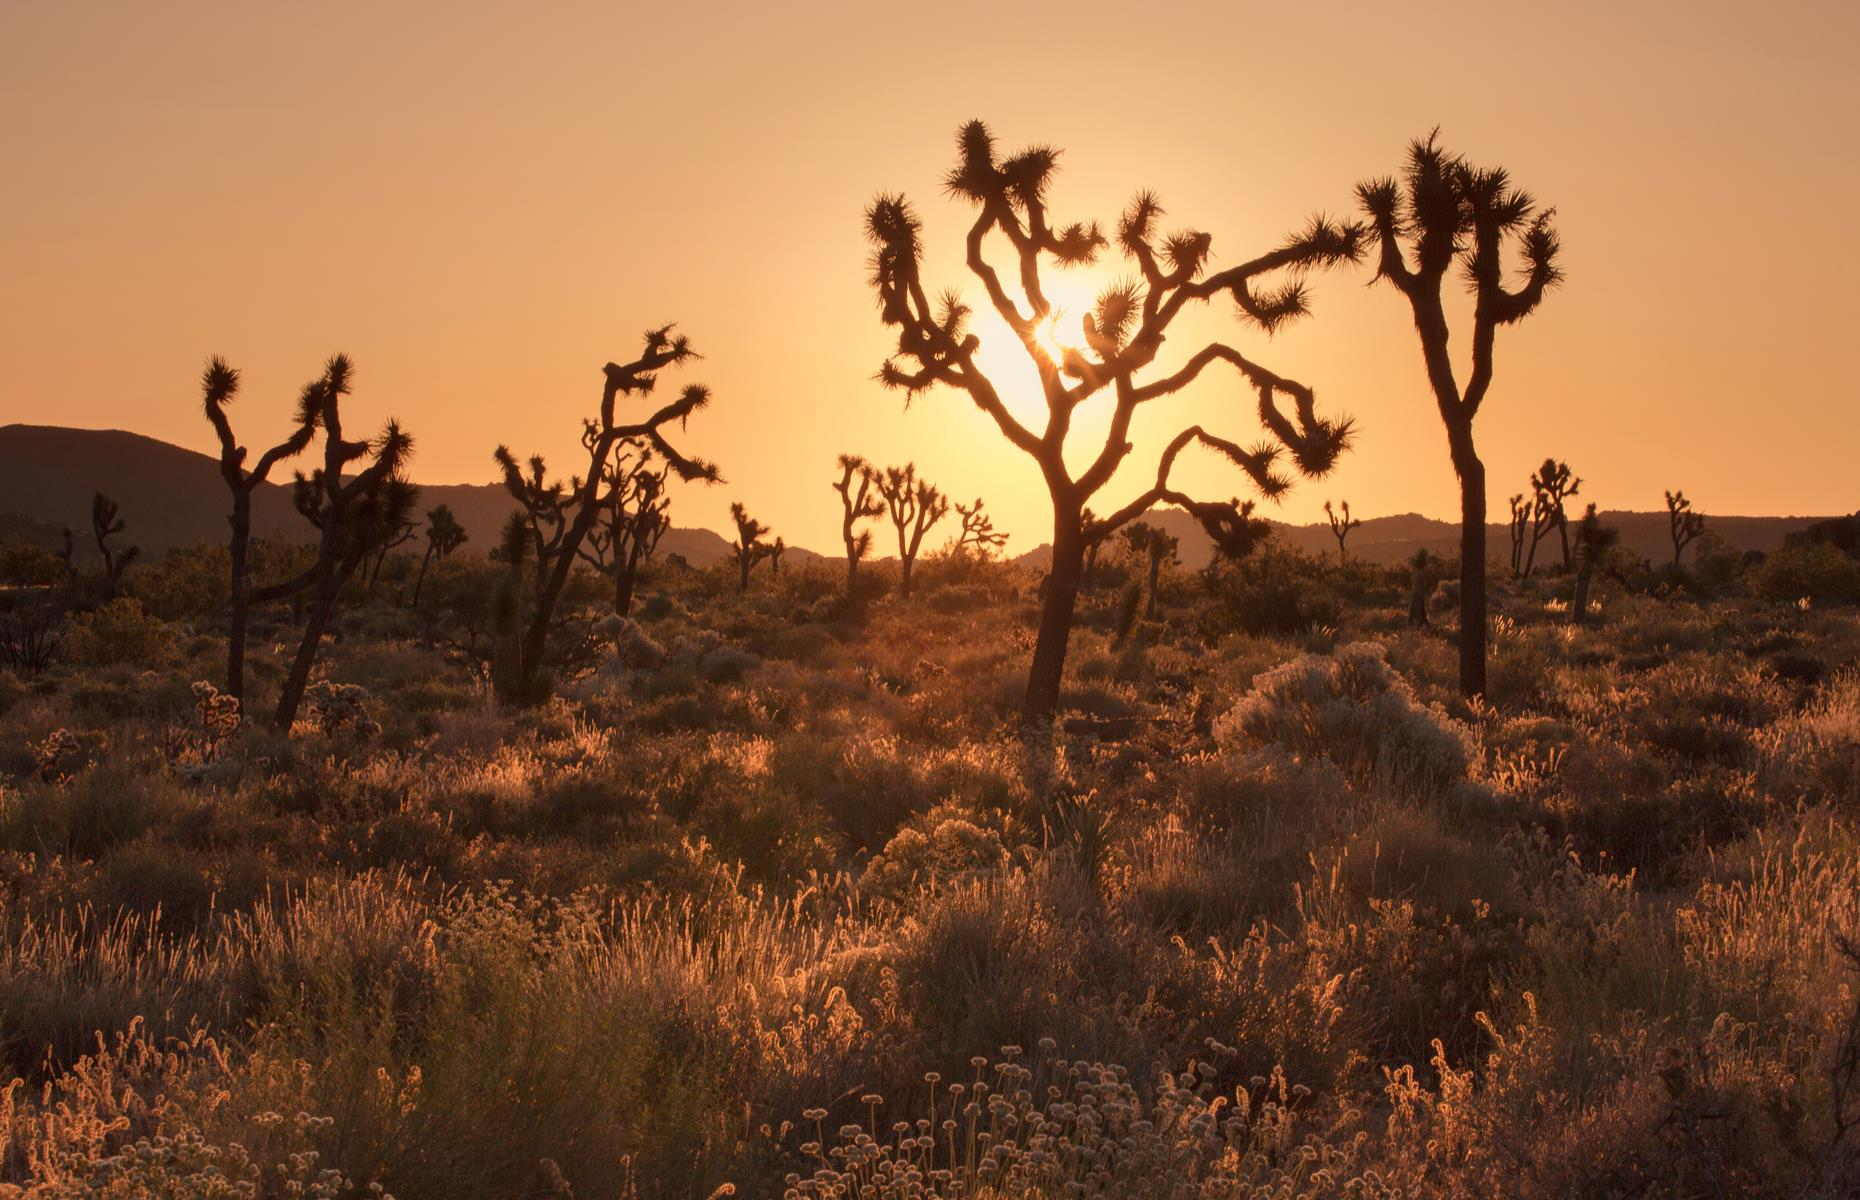 Slide 6 of 37: Many Joshua trees in the national park have already perished, unable to withstand the hotter, drier climate. The saplings with shallow root systems stand little chance of survival now and even some of the mature trees with their deeper root systems have been killed off.